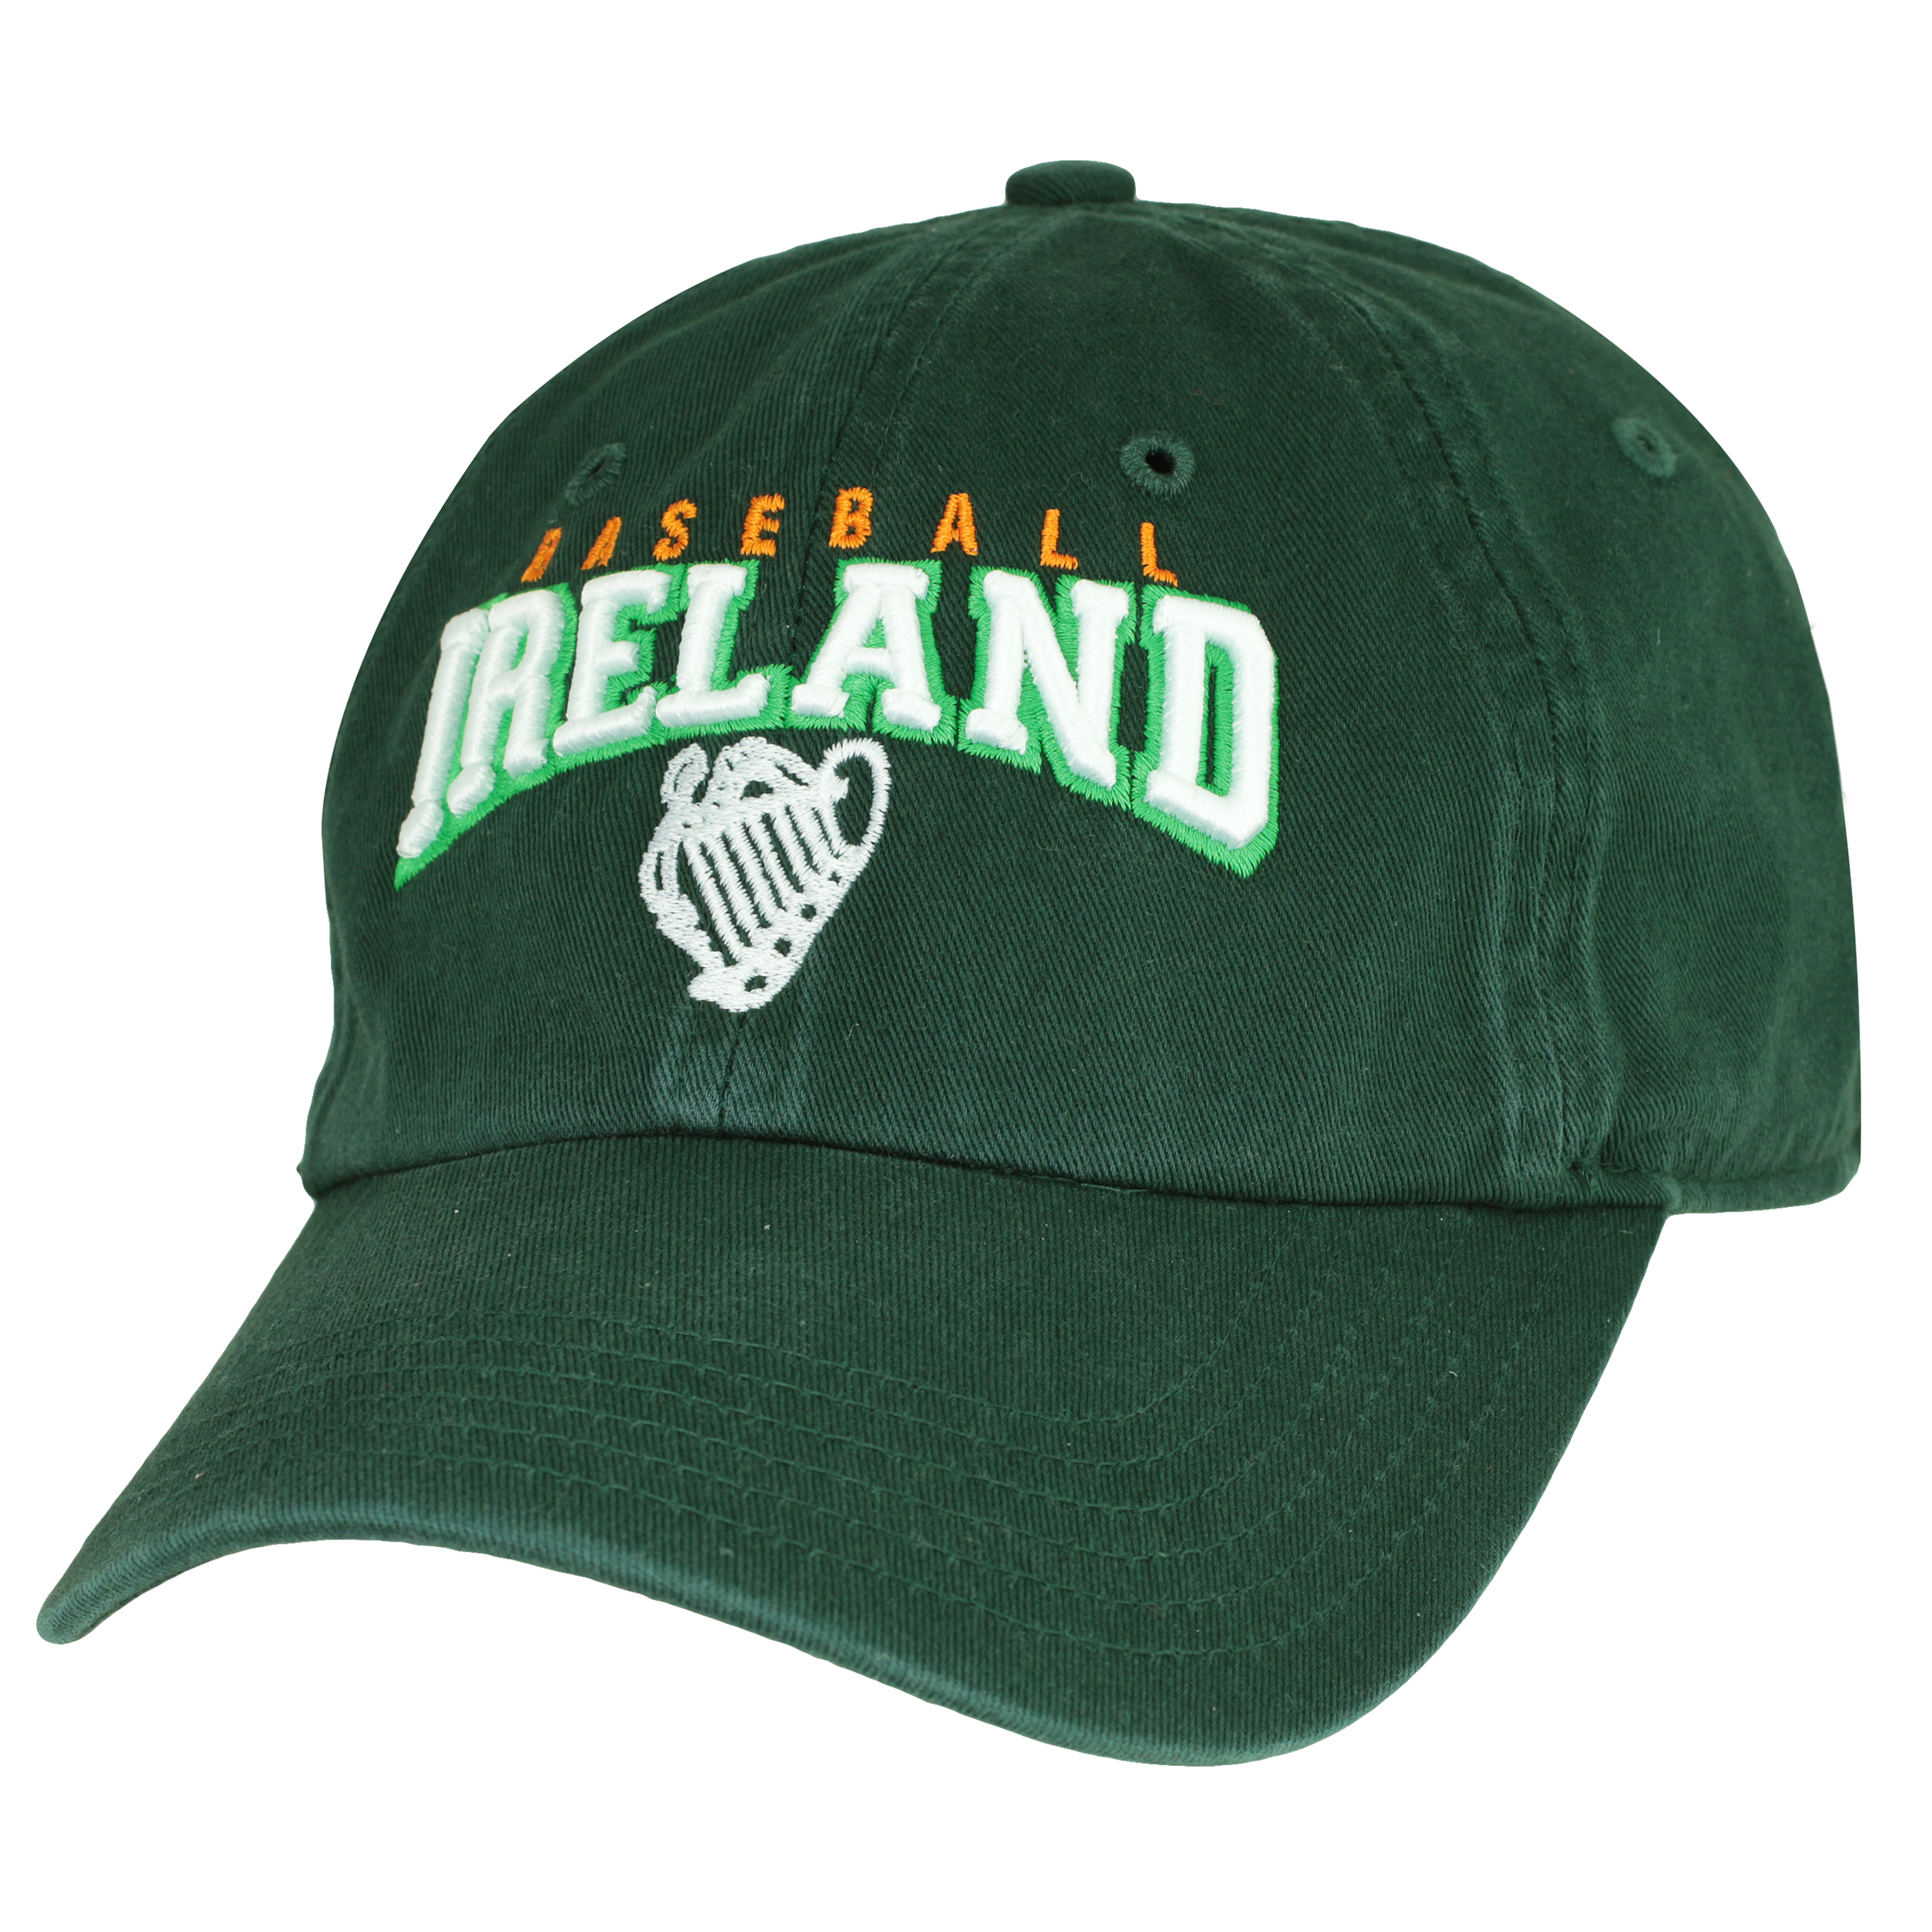 Ireland Baseball Cap with Adjustable Strap and Buckle BIADJCAP017